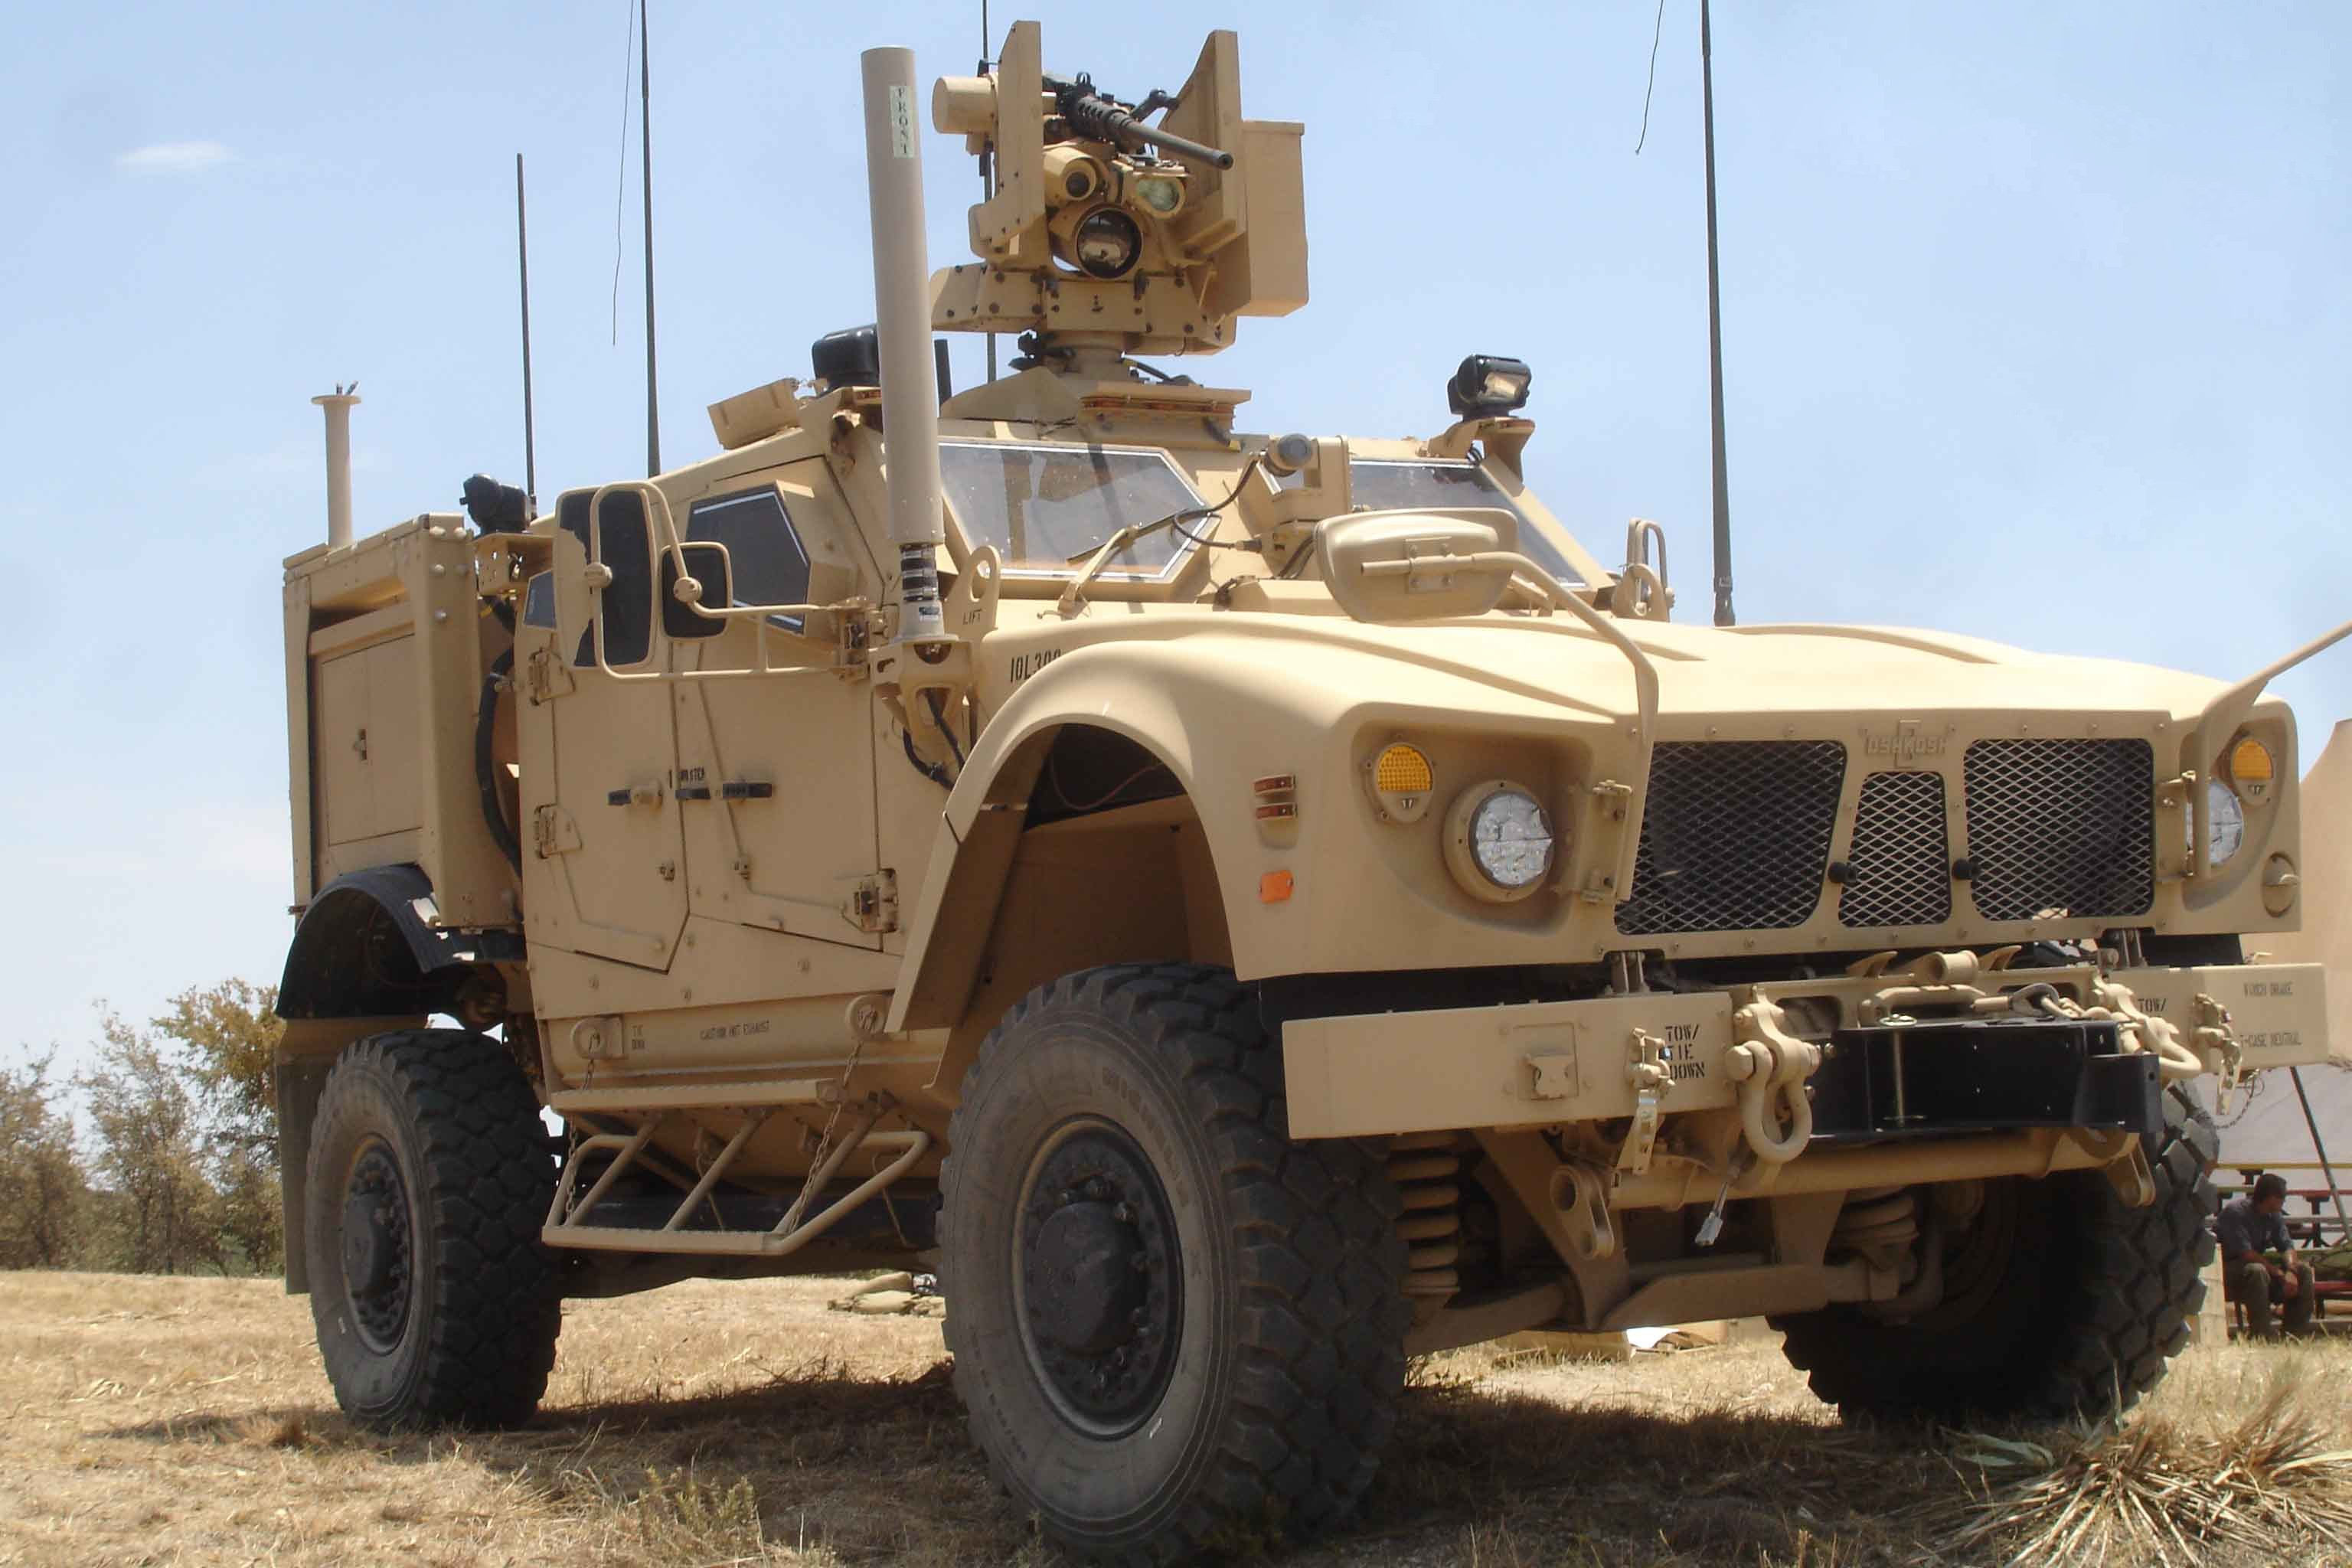 M153_CROWS_mounted_on_a_U.S._Army_M-ATV.